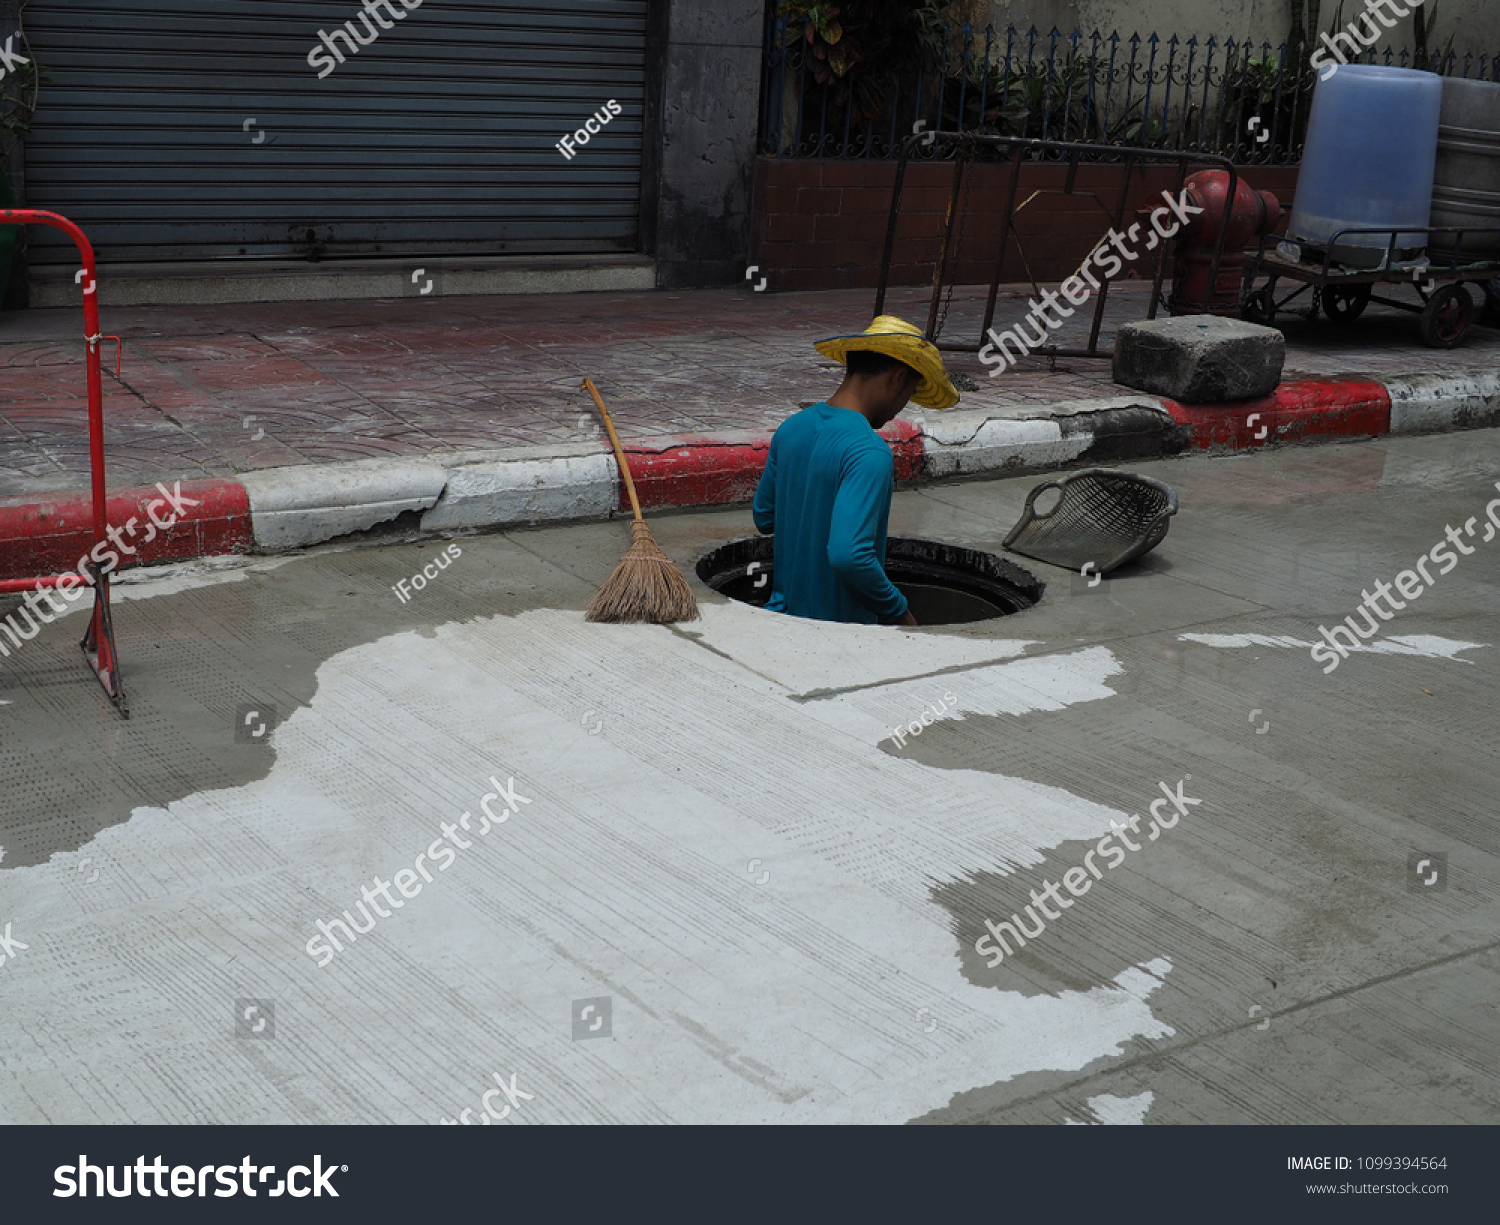 BANGKOK, THAILAND - MAY 27, 2018: A worker stands without personal protective equipment in a shallow manhole on May 27, 2018 in Bangkok, Thailand.